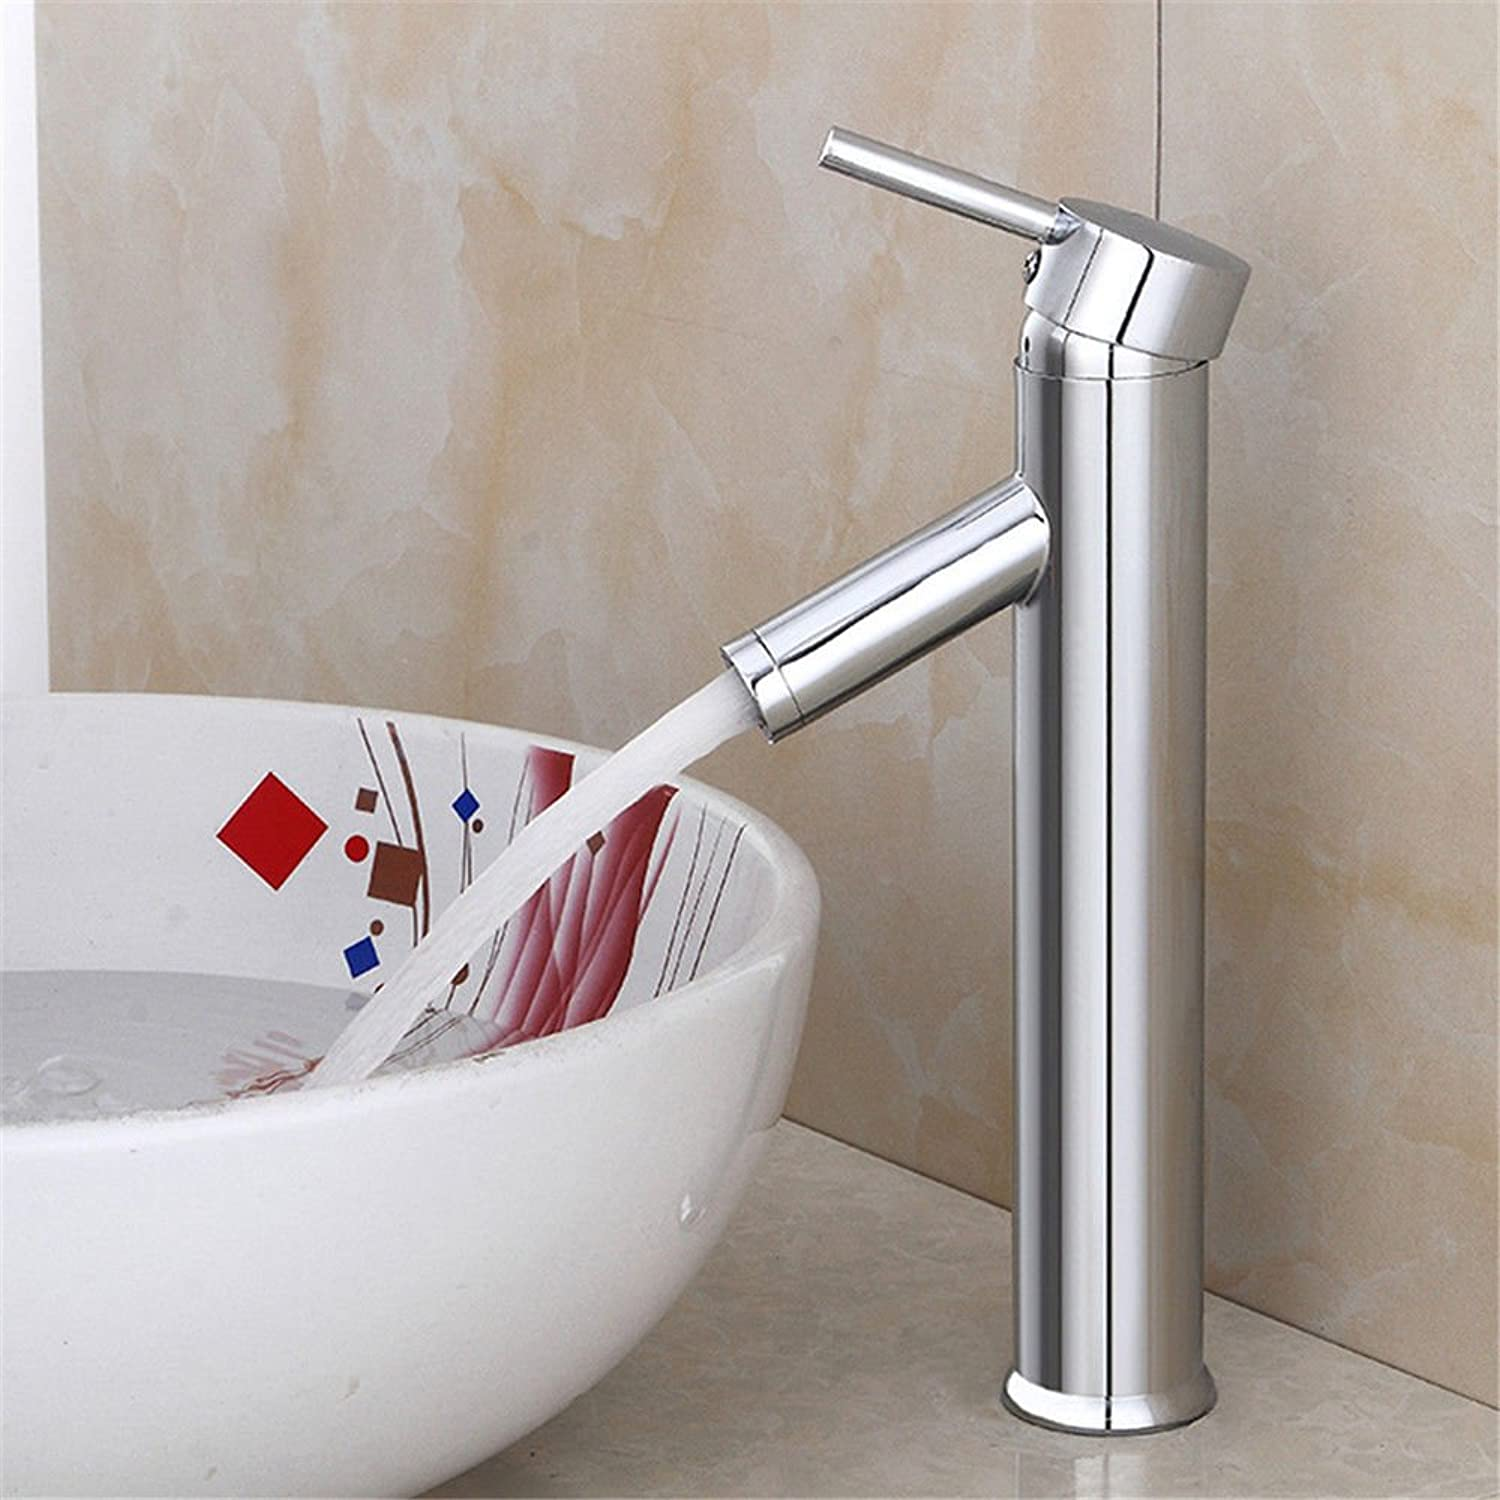 Modern simple copper hot and cold kitchen sink taps kitchen faucet Copper pull-out copper faucet faucet hot and cold mixed bathroom basin faucet Suitable for all bathroom kitchen sinks